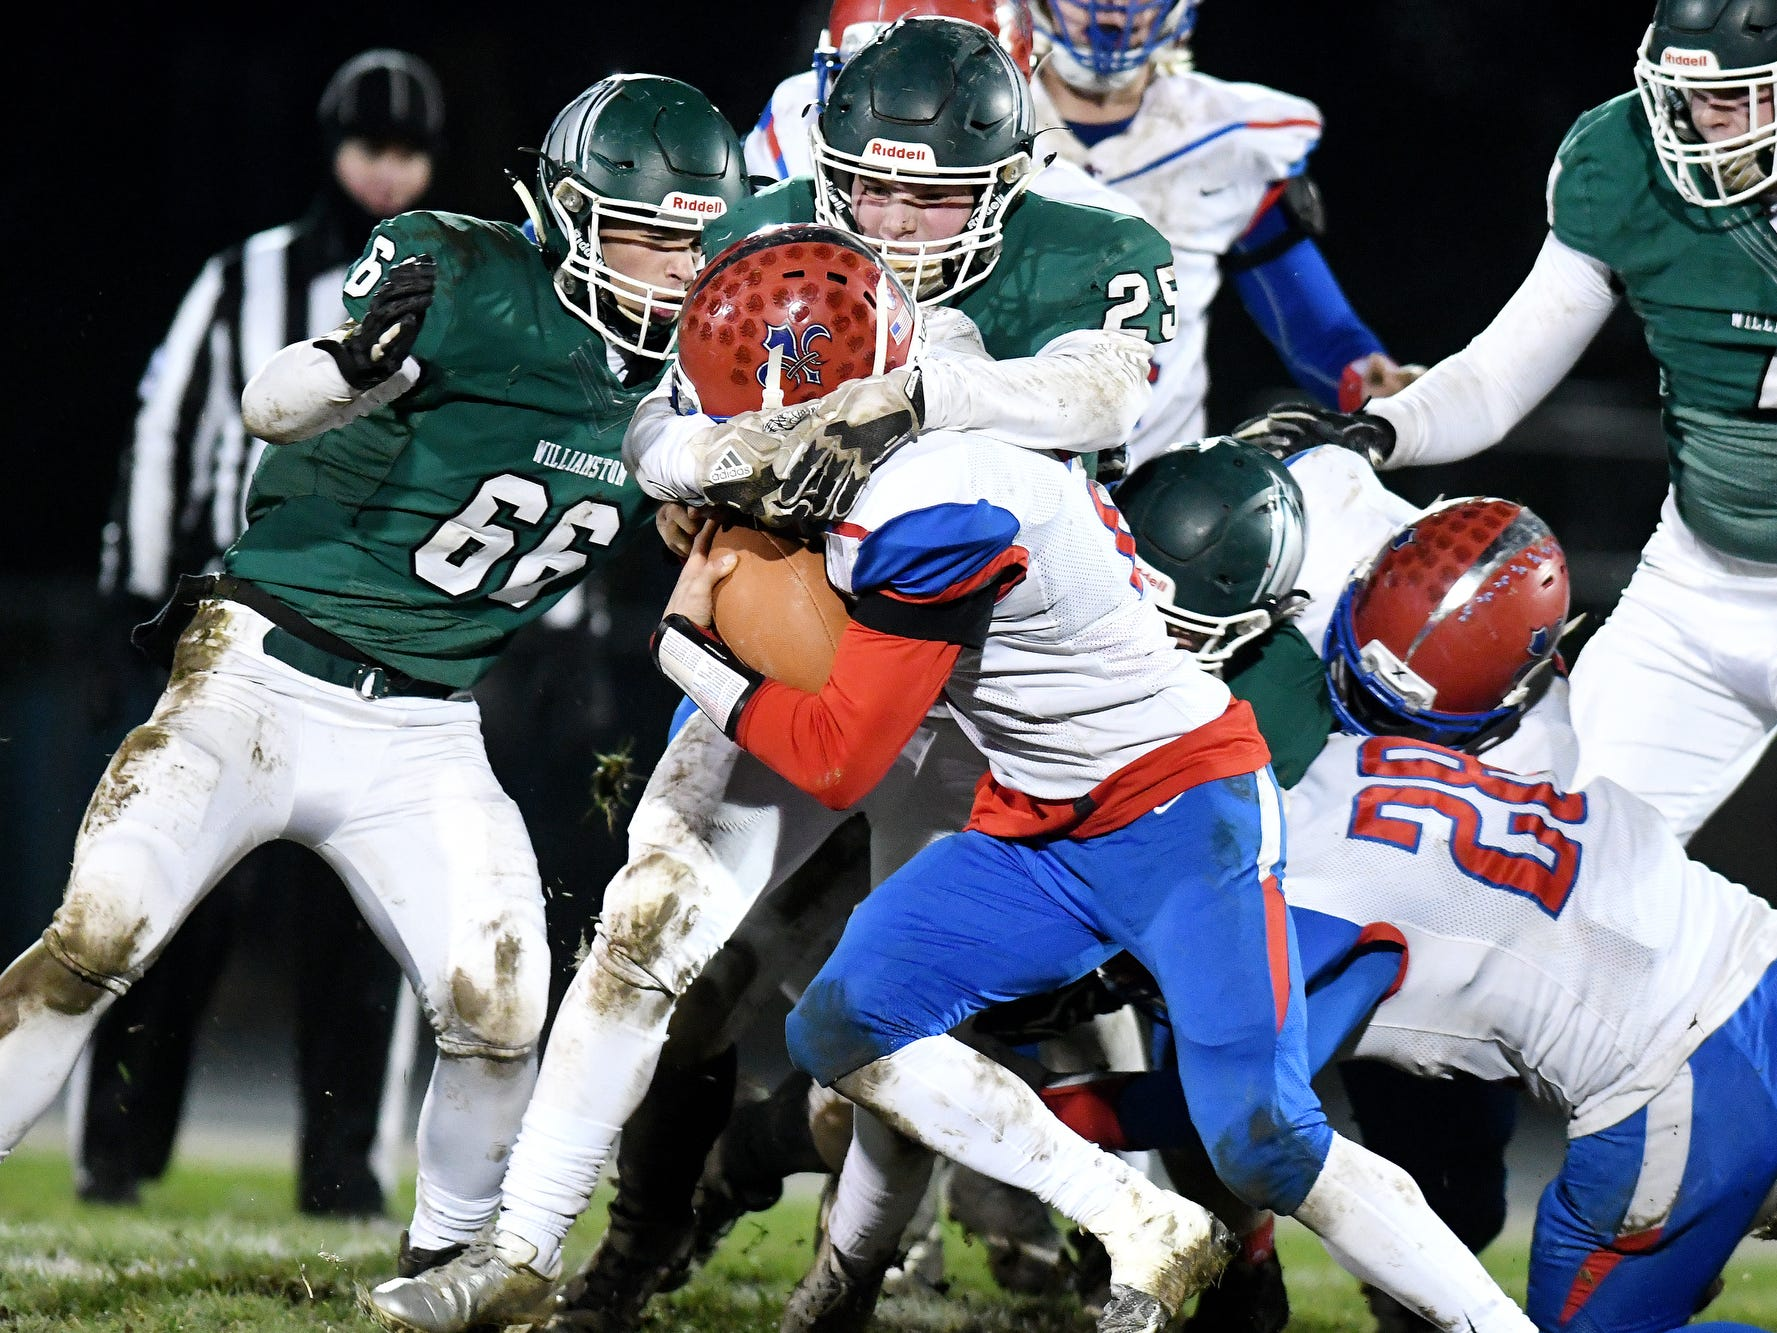 Williamston's Conner Sparks, right, and Jacob Jones, left, tackle St. Clair's Ethan Mahn during the second quarter on Friday, Nov. 9, 2018, in Williamston.